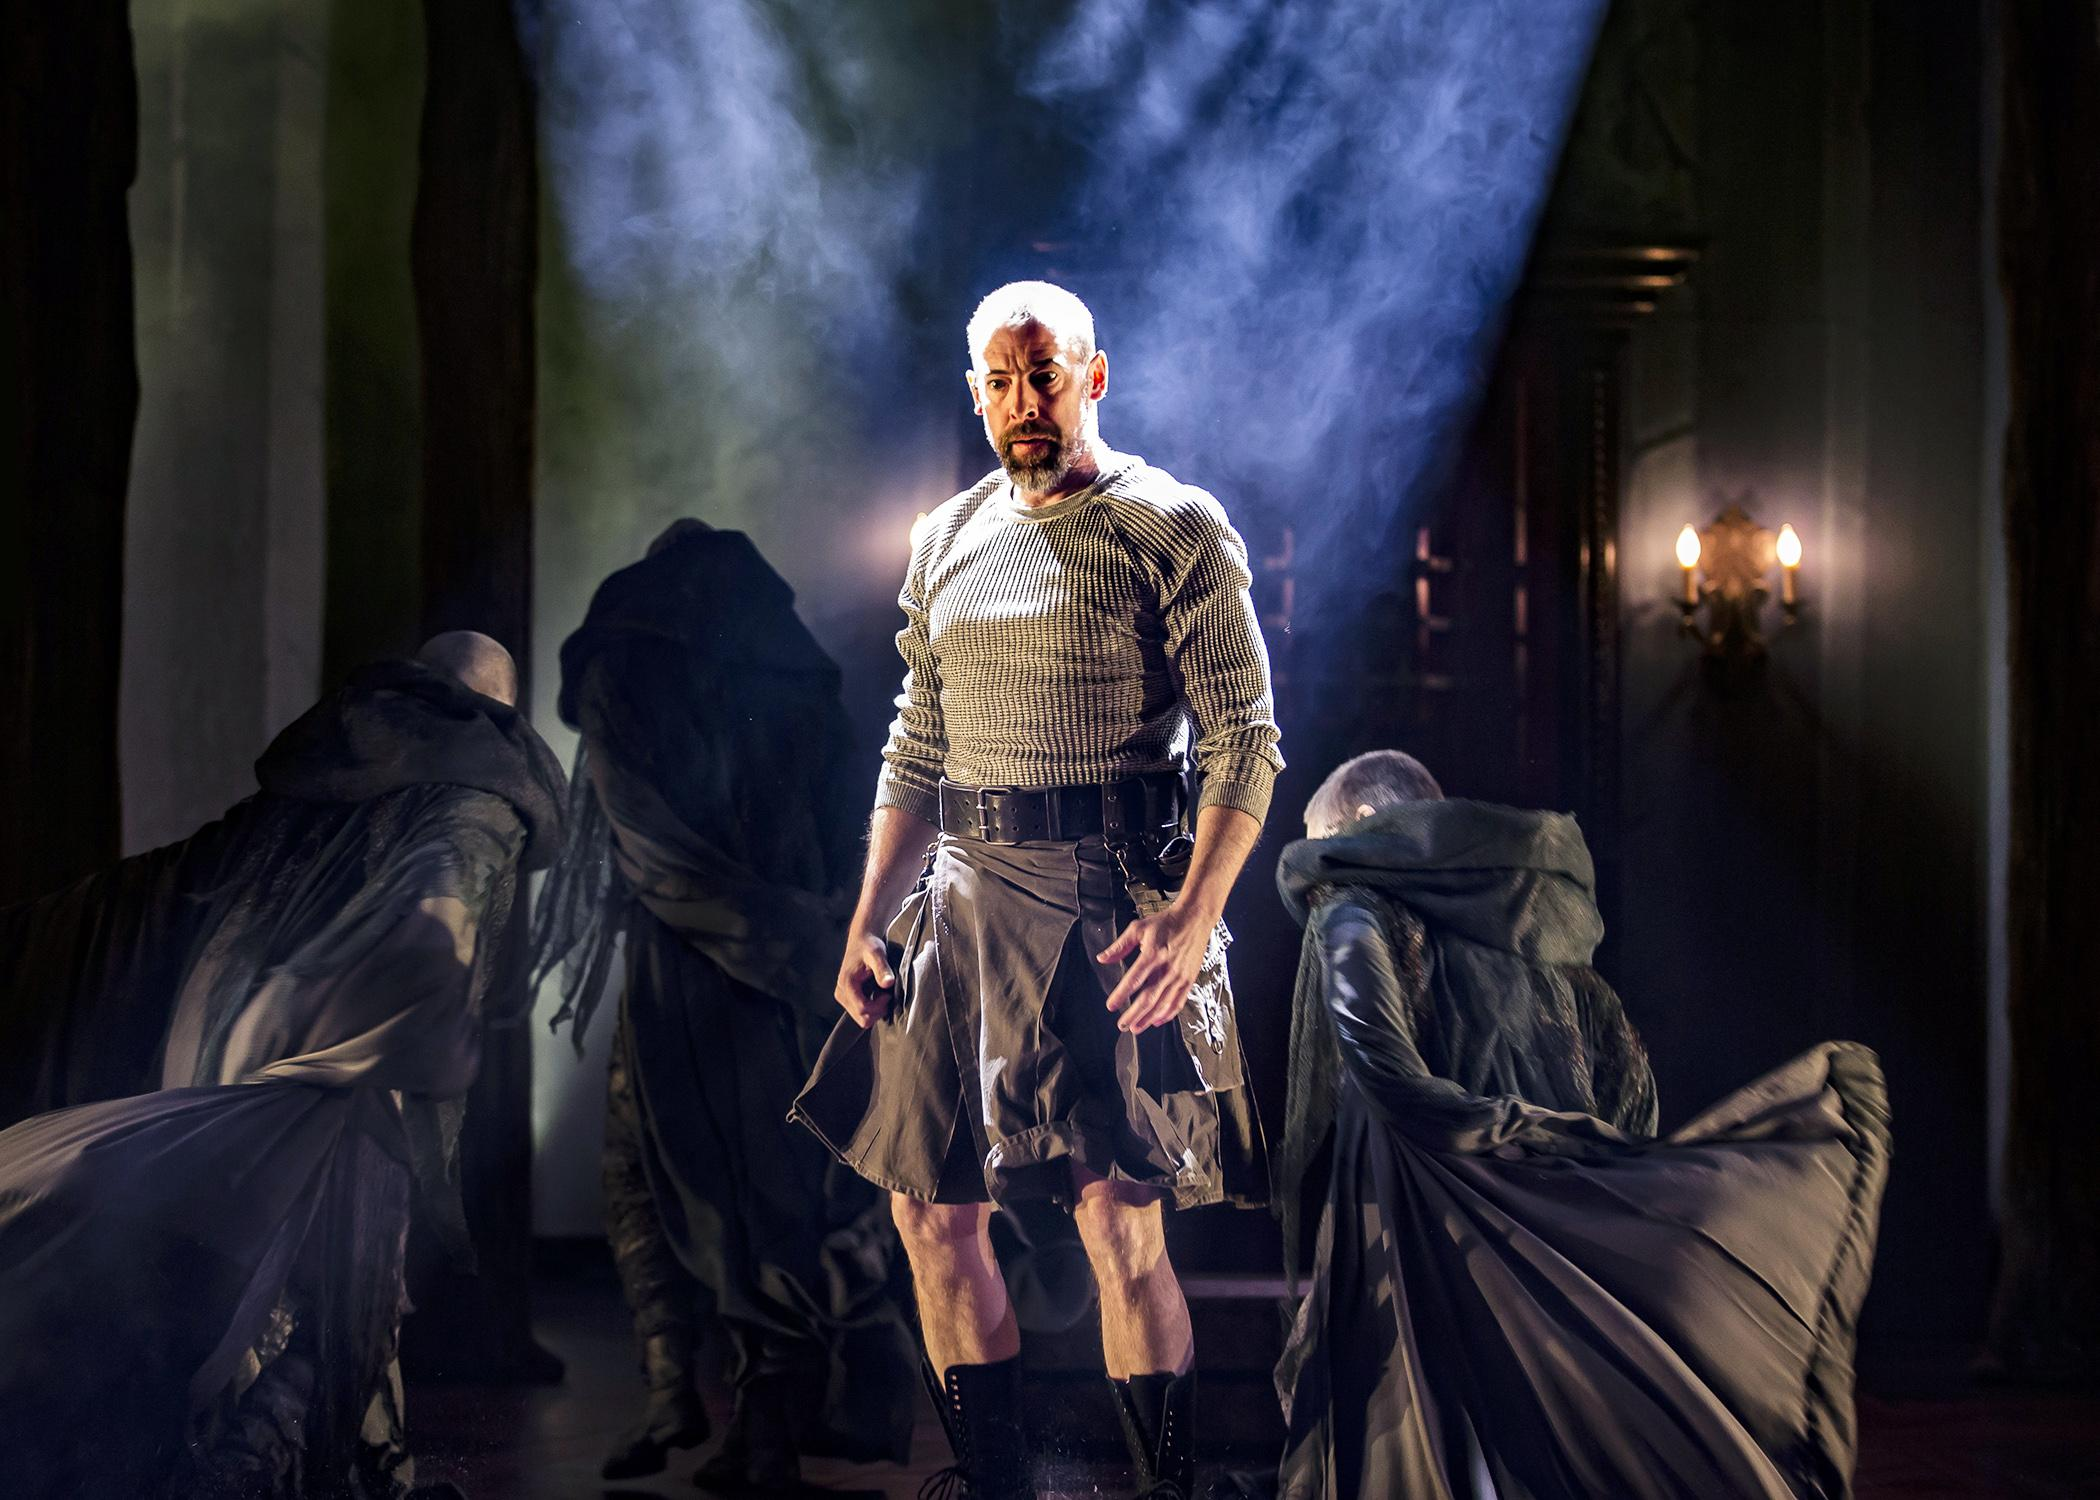 the role of supernatural forces in shakespeares play macbeth In this lesson, we will explore how shakespeare often defies traditional ideas and stereotypes about gender in his plays specifically, we will look at gender roles in 'macbeth,' shakespeare's.